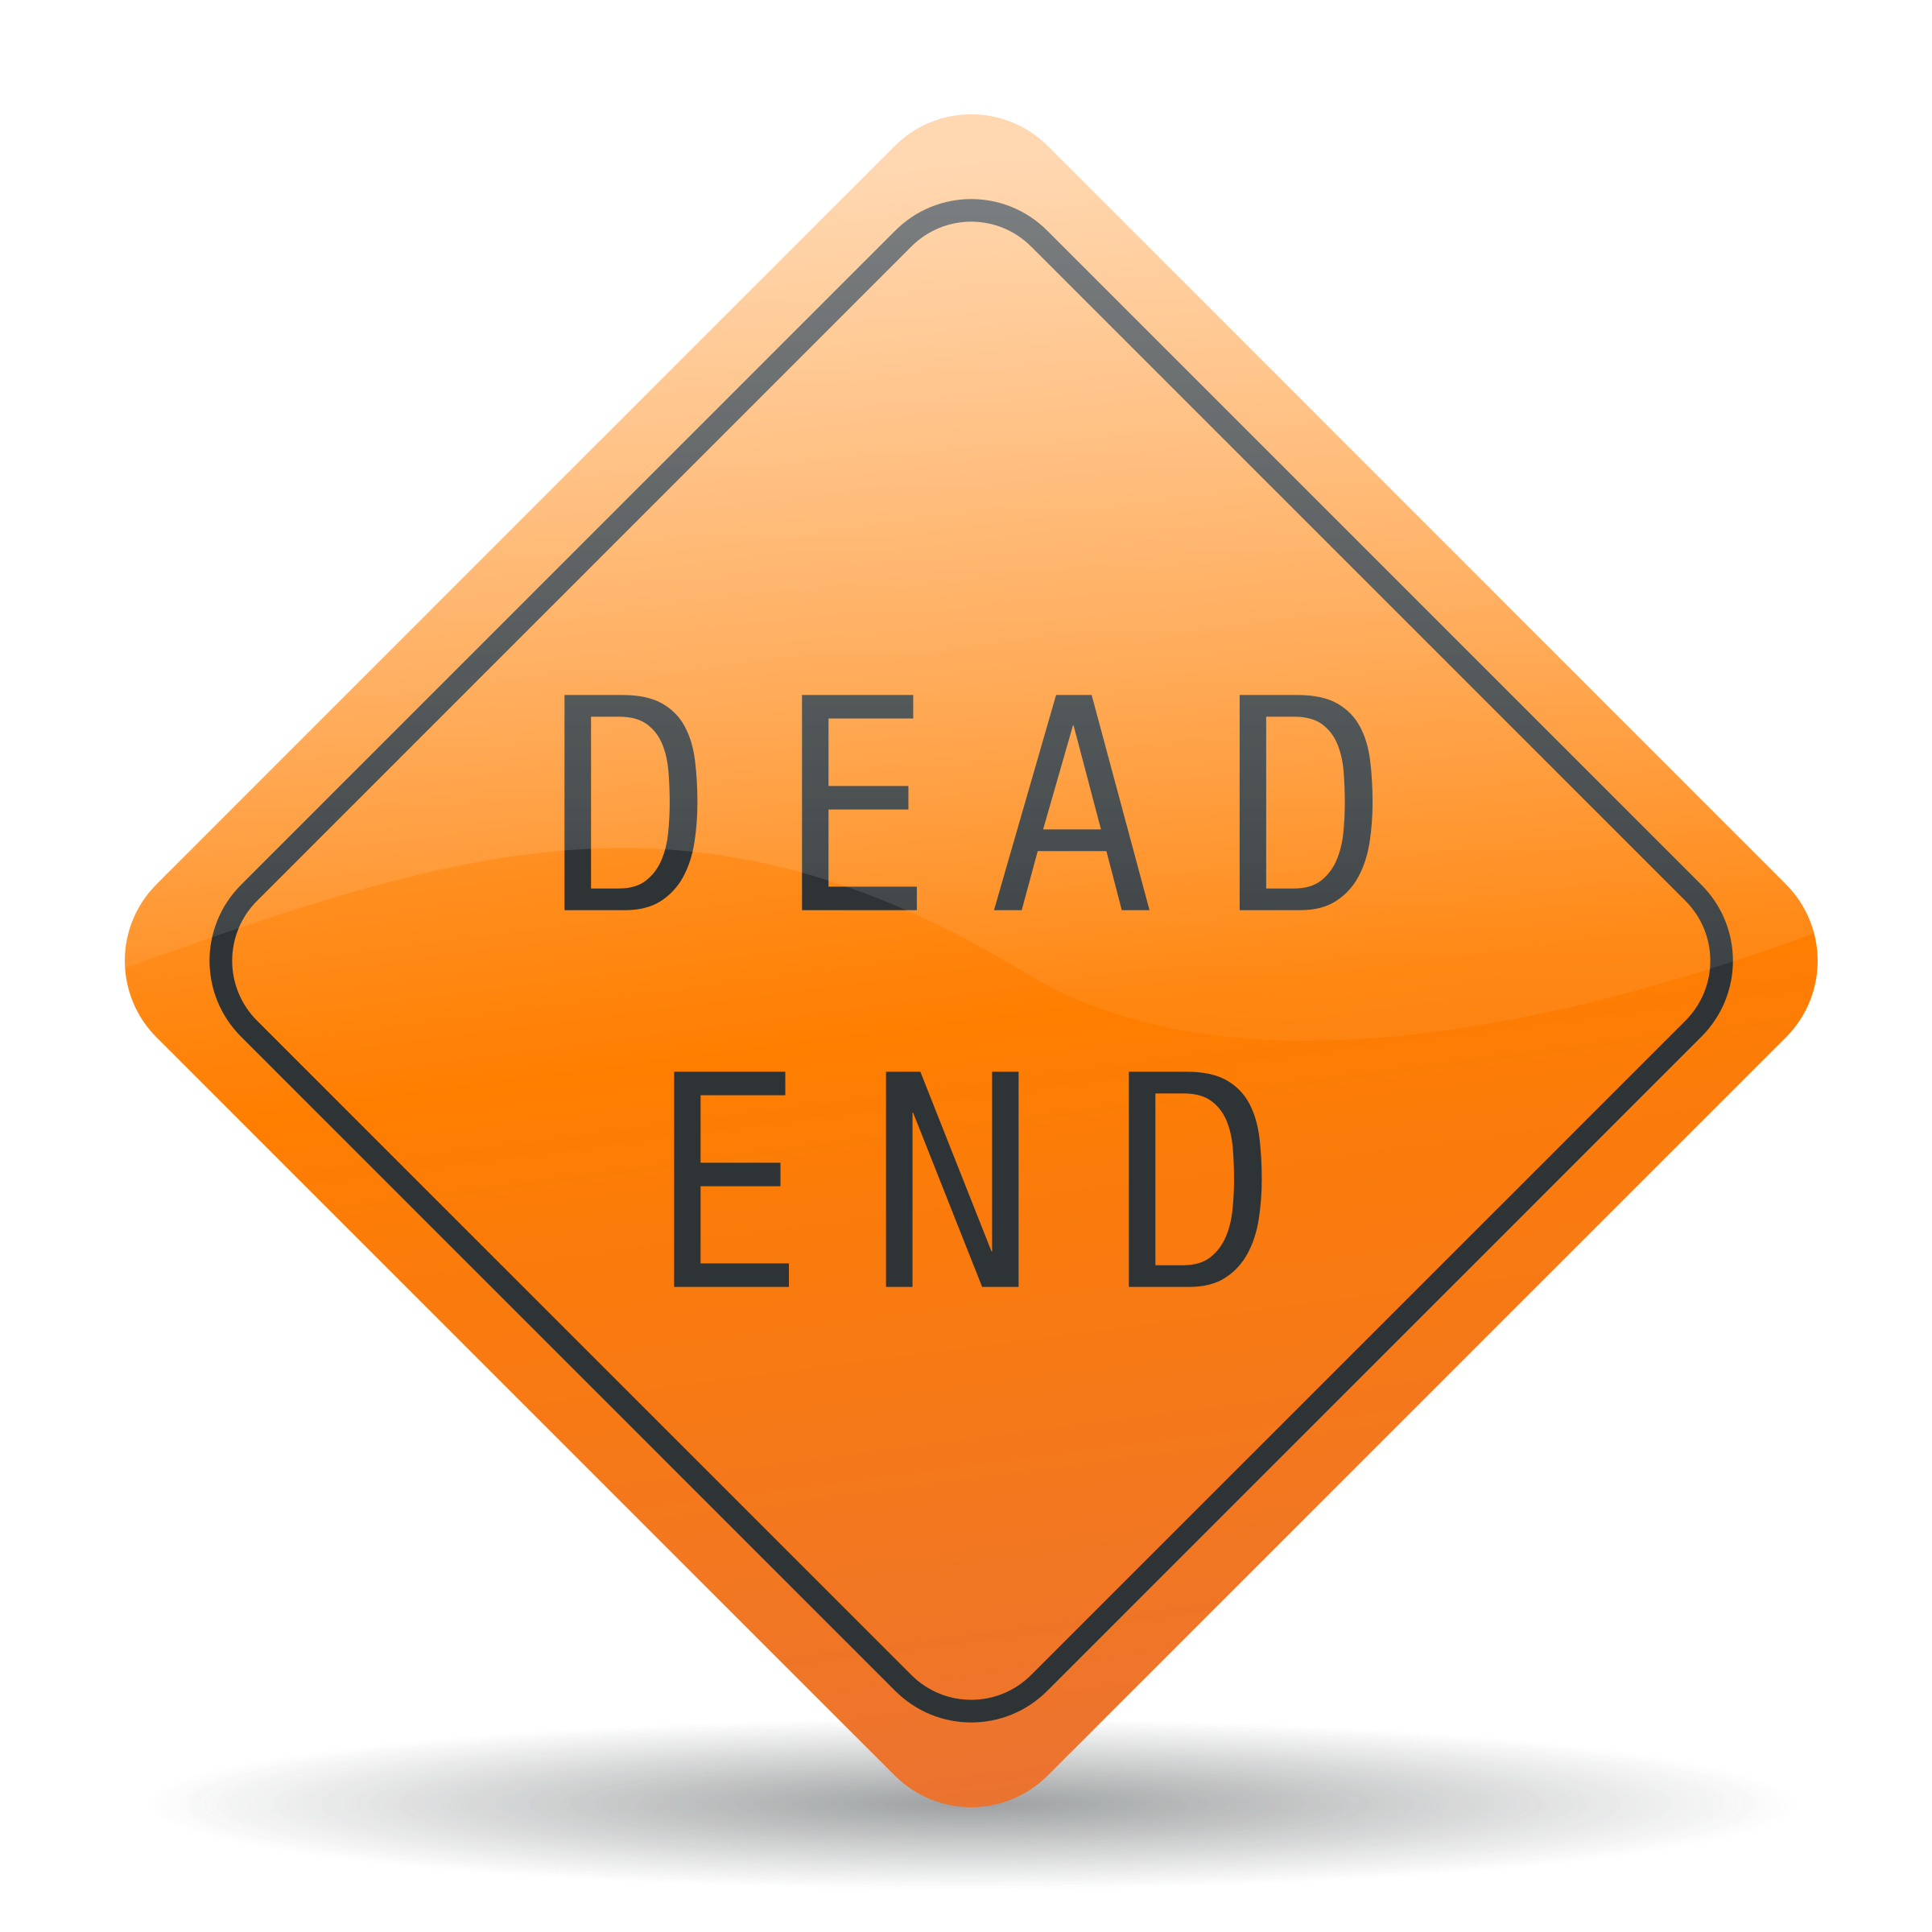 Dead end sign by jhnri4